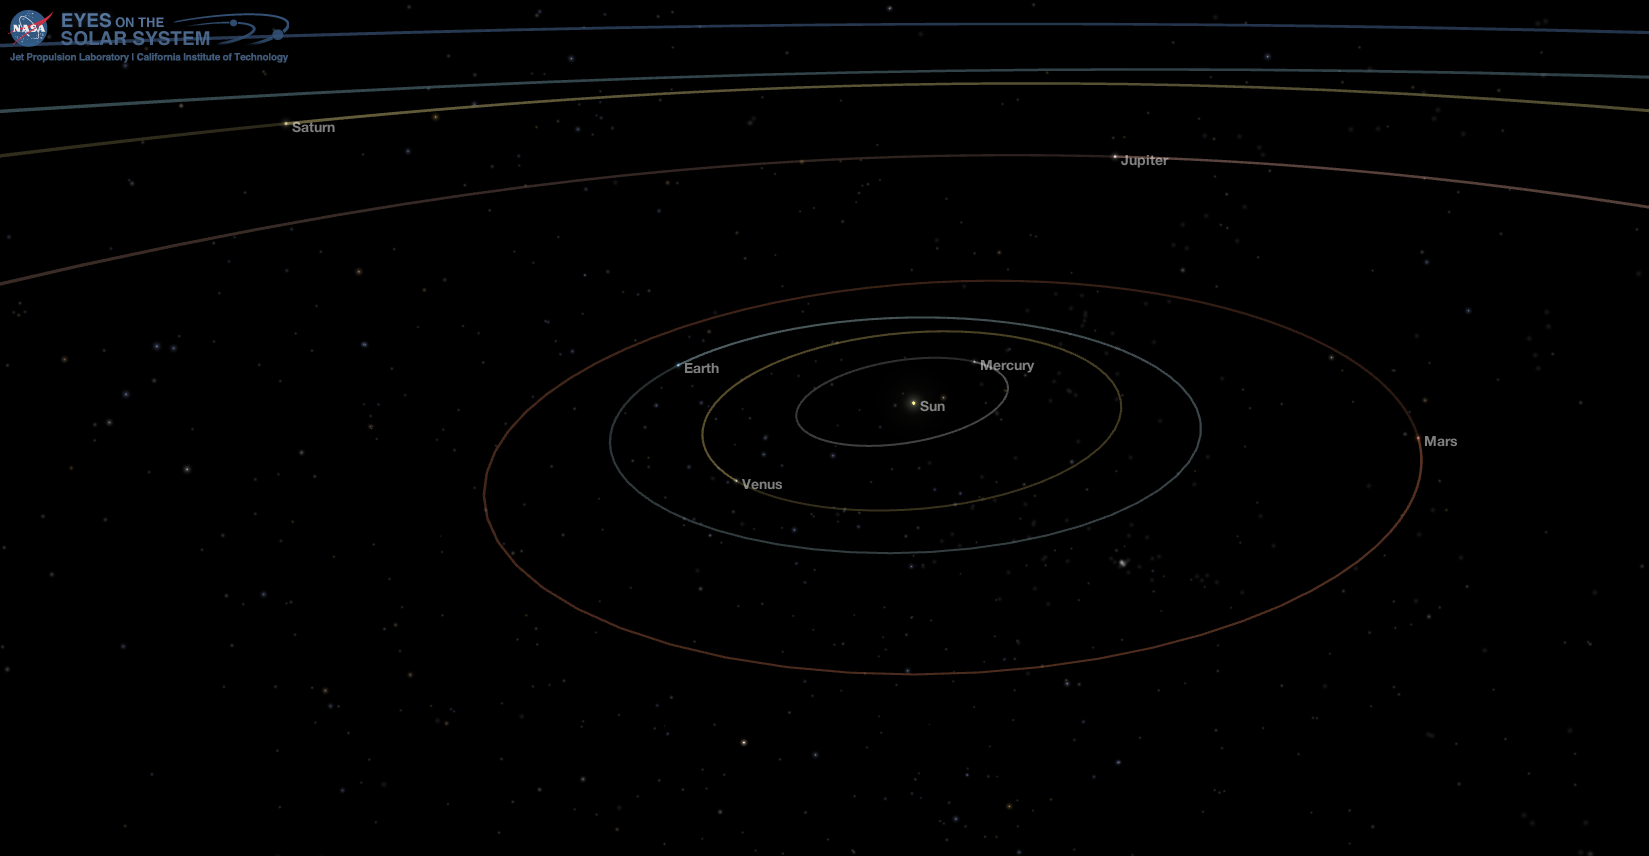 The Solar System - July 10, 2017